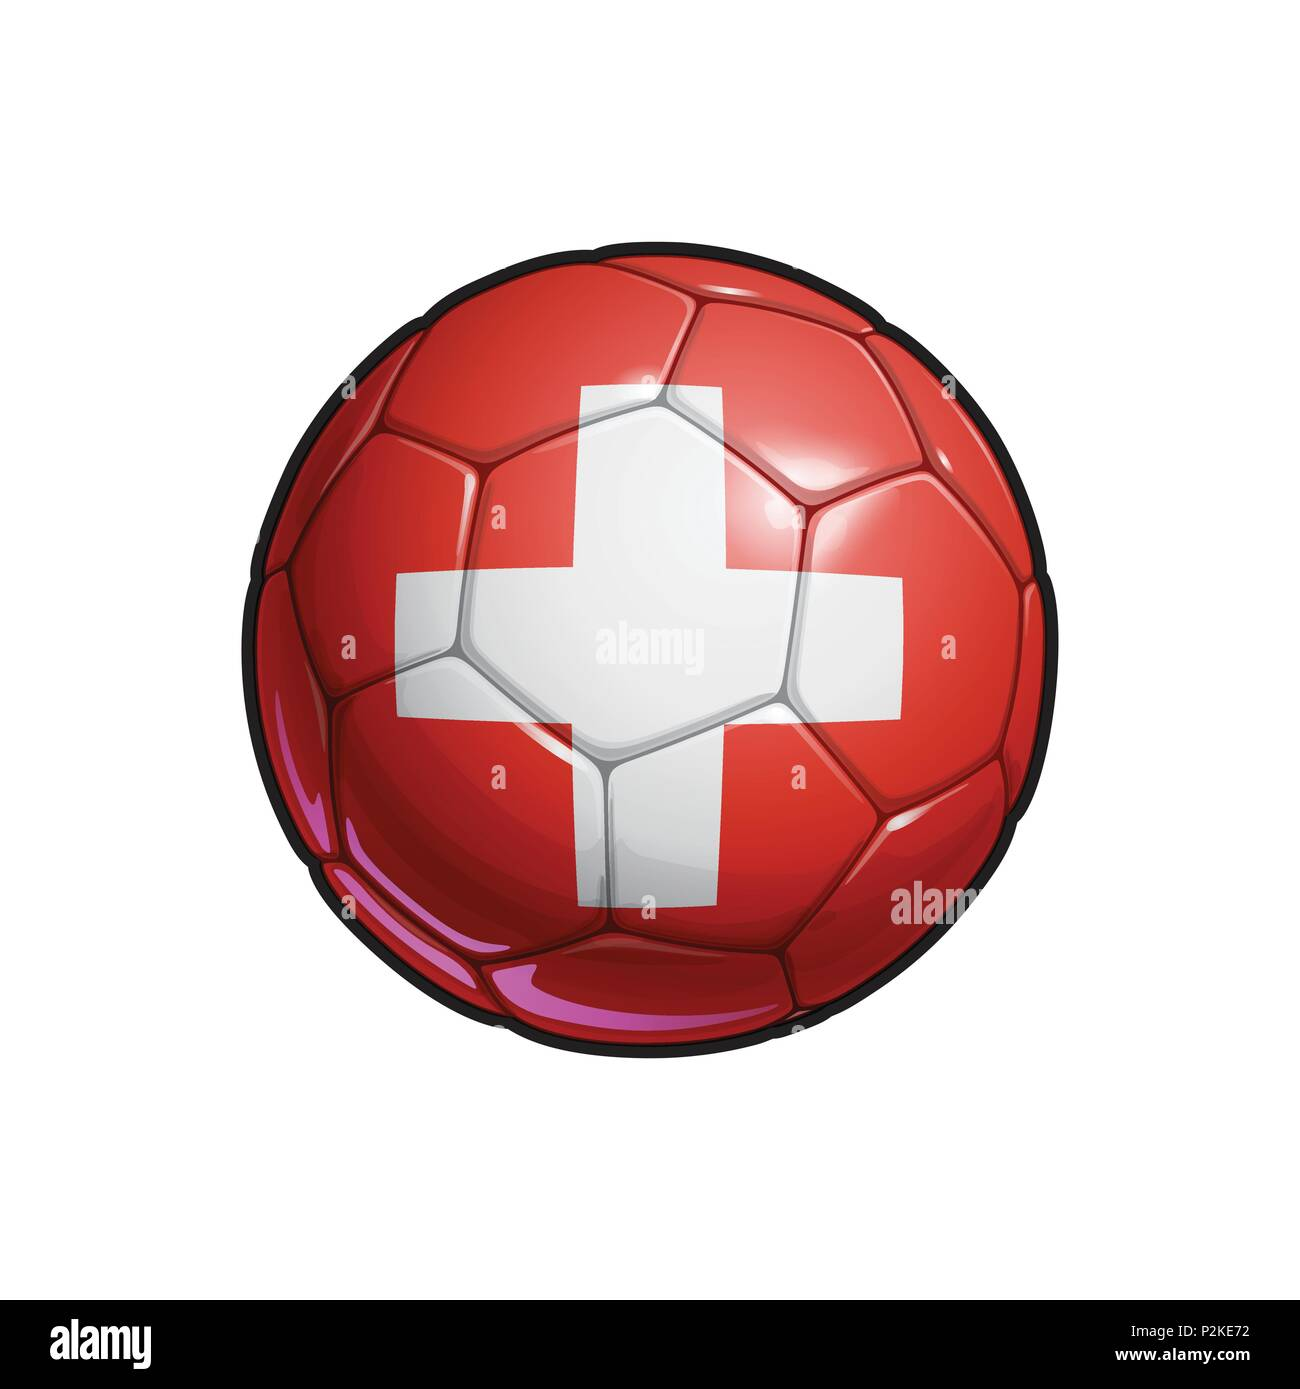 Vector Illustration of a Football – Soccer ball with the Swiss Flag Colors. All elements neatly on well defined Layers - Stock Vector